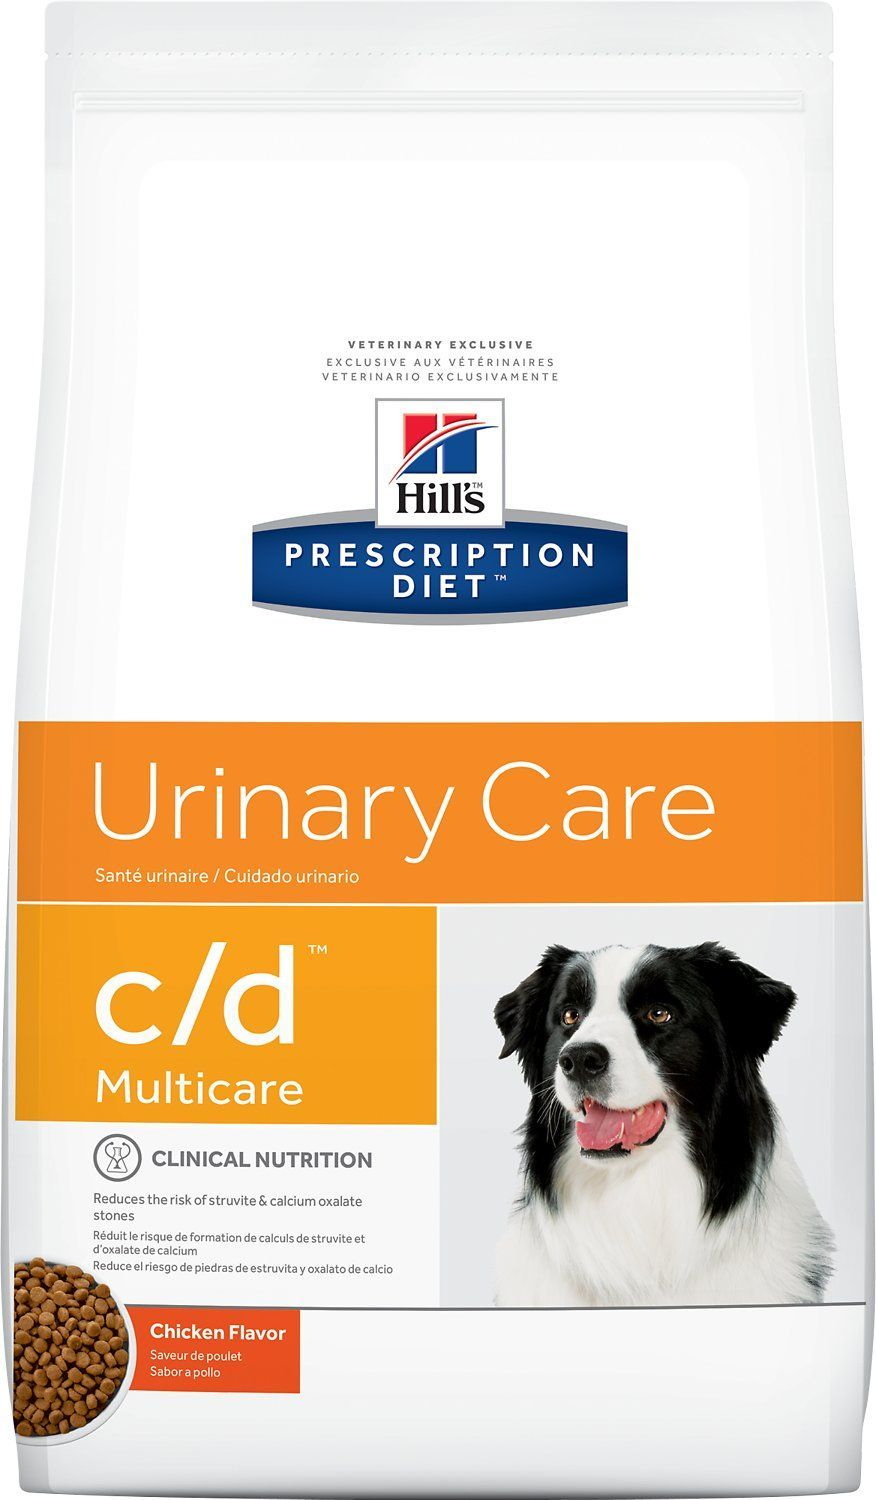 Hill's Prescription Diet c/d Multicare Urinary Care